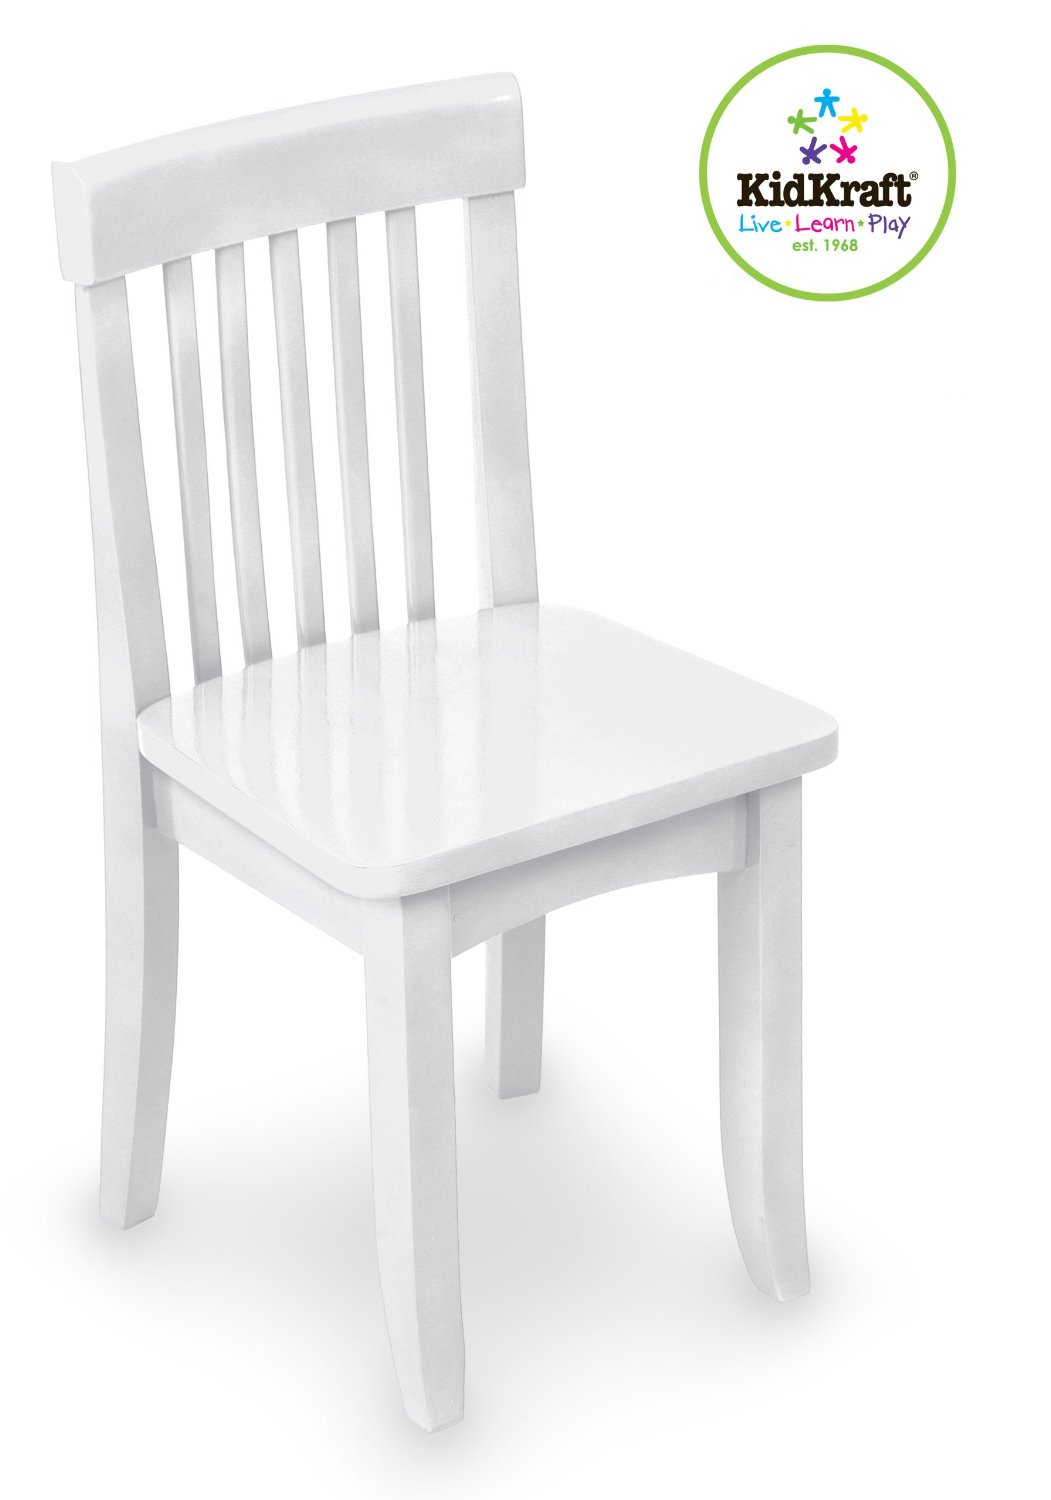 Kidkraft Avalon Chair Baby Sitting White 43 Gold Tried And True Tuesday